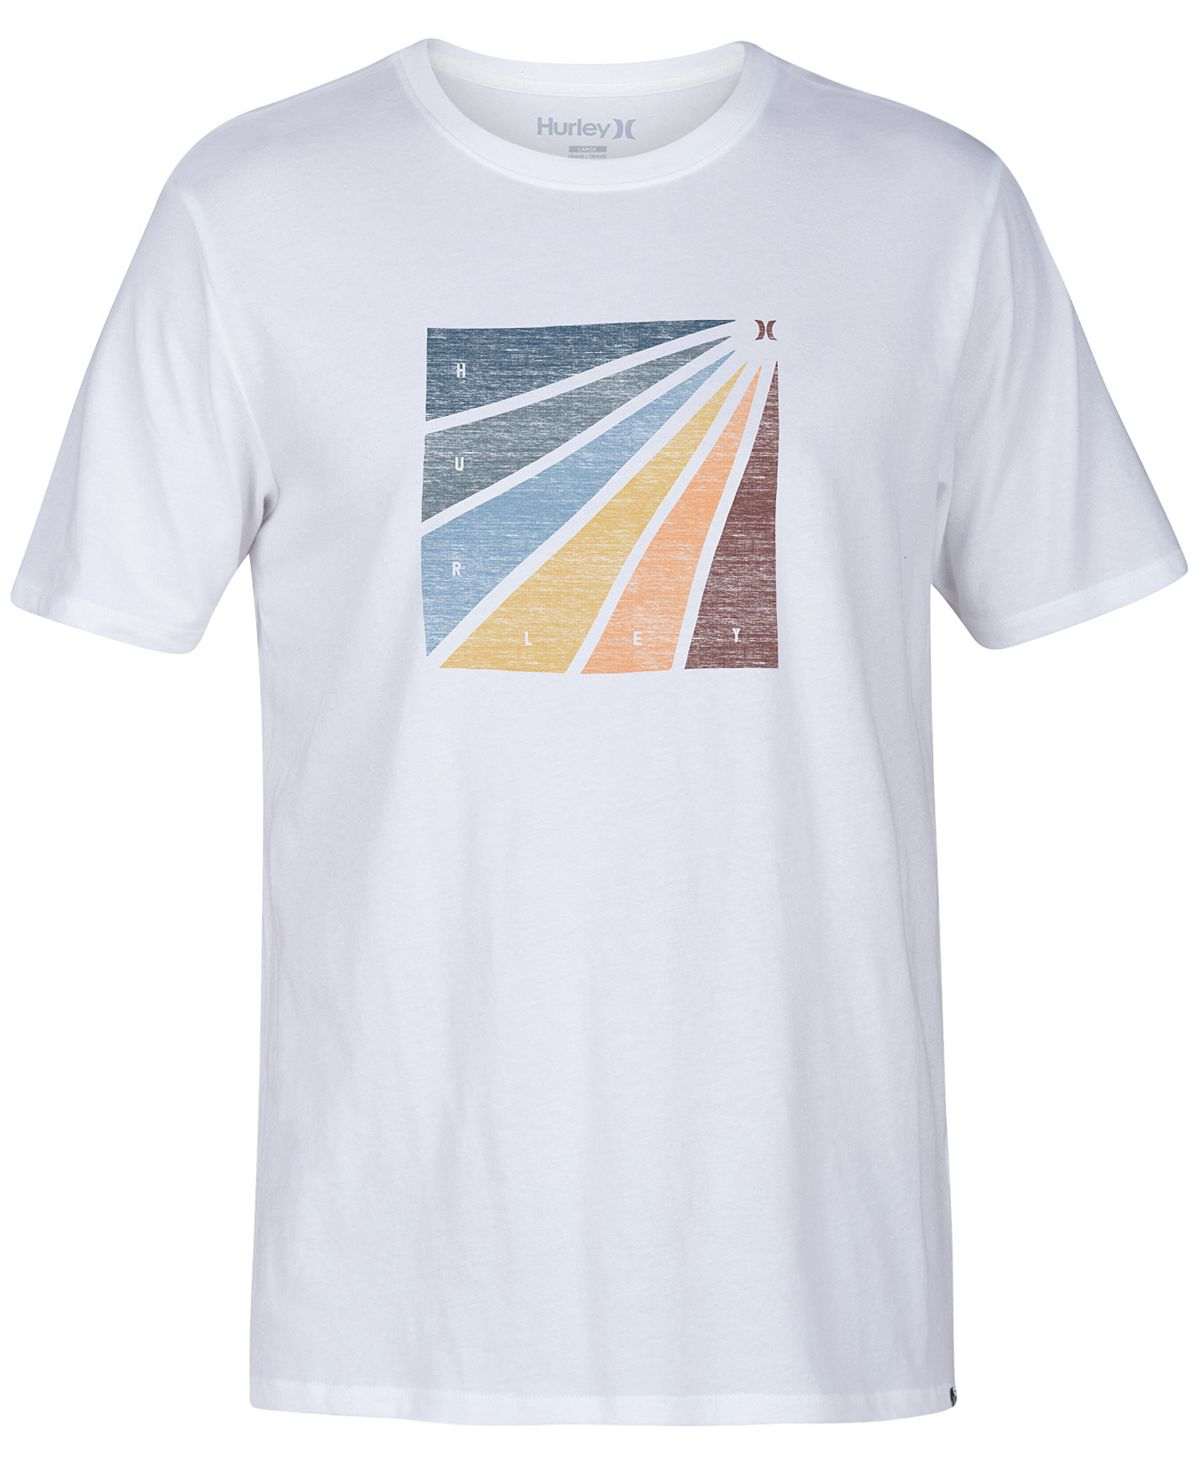 Hurley Prism Burt Enzyme Graphic T-shirt